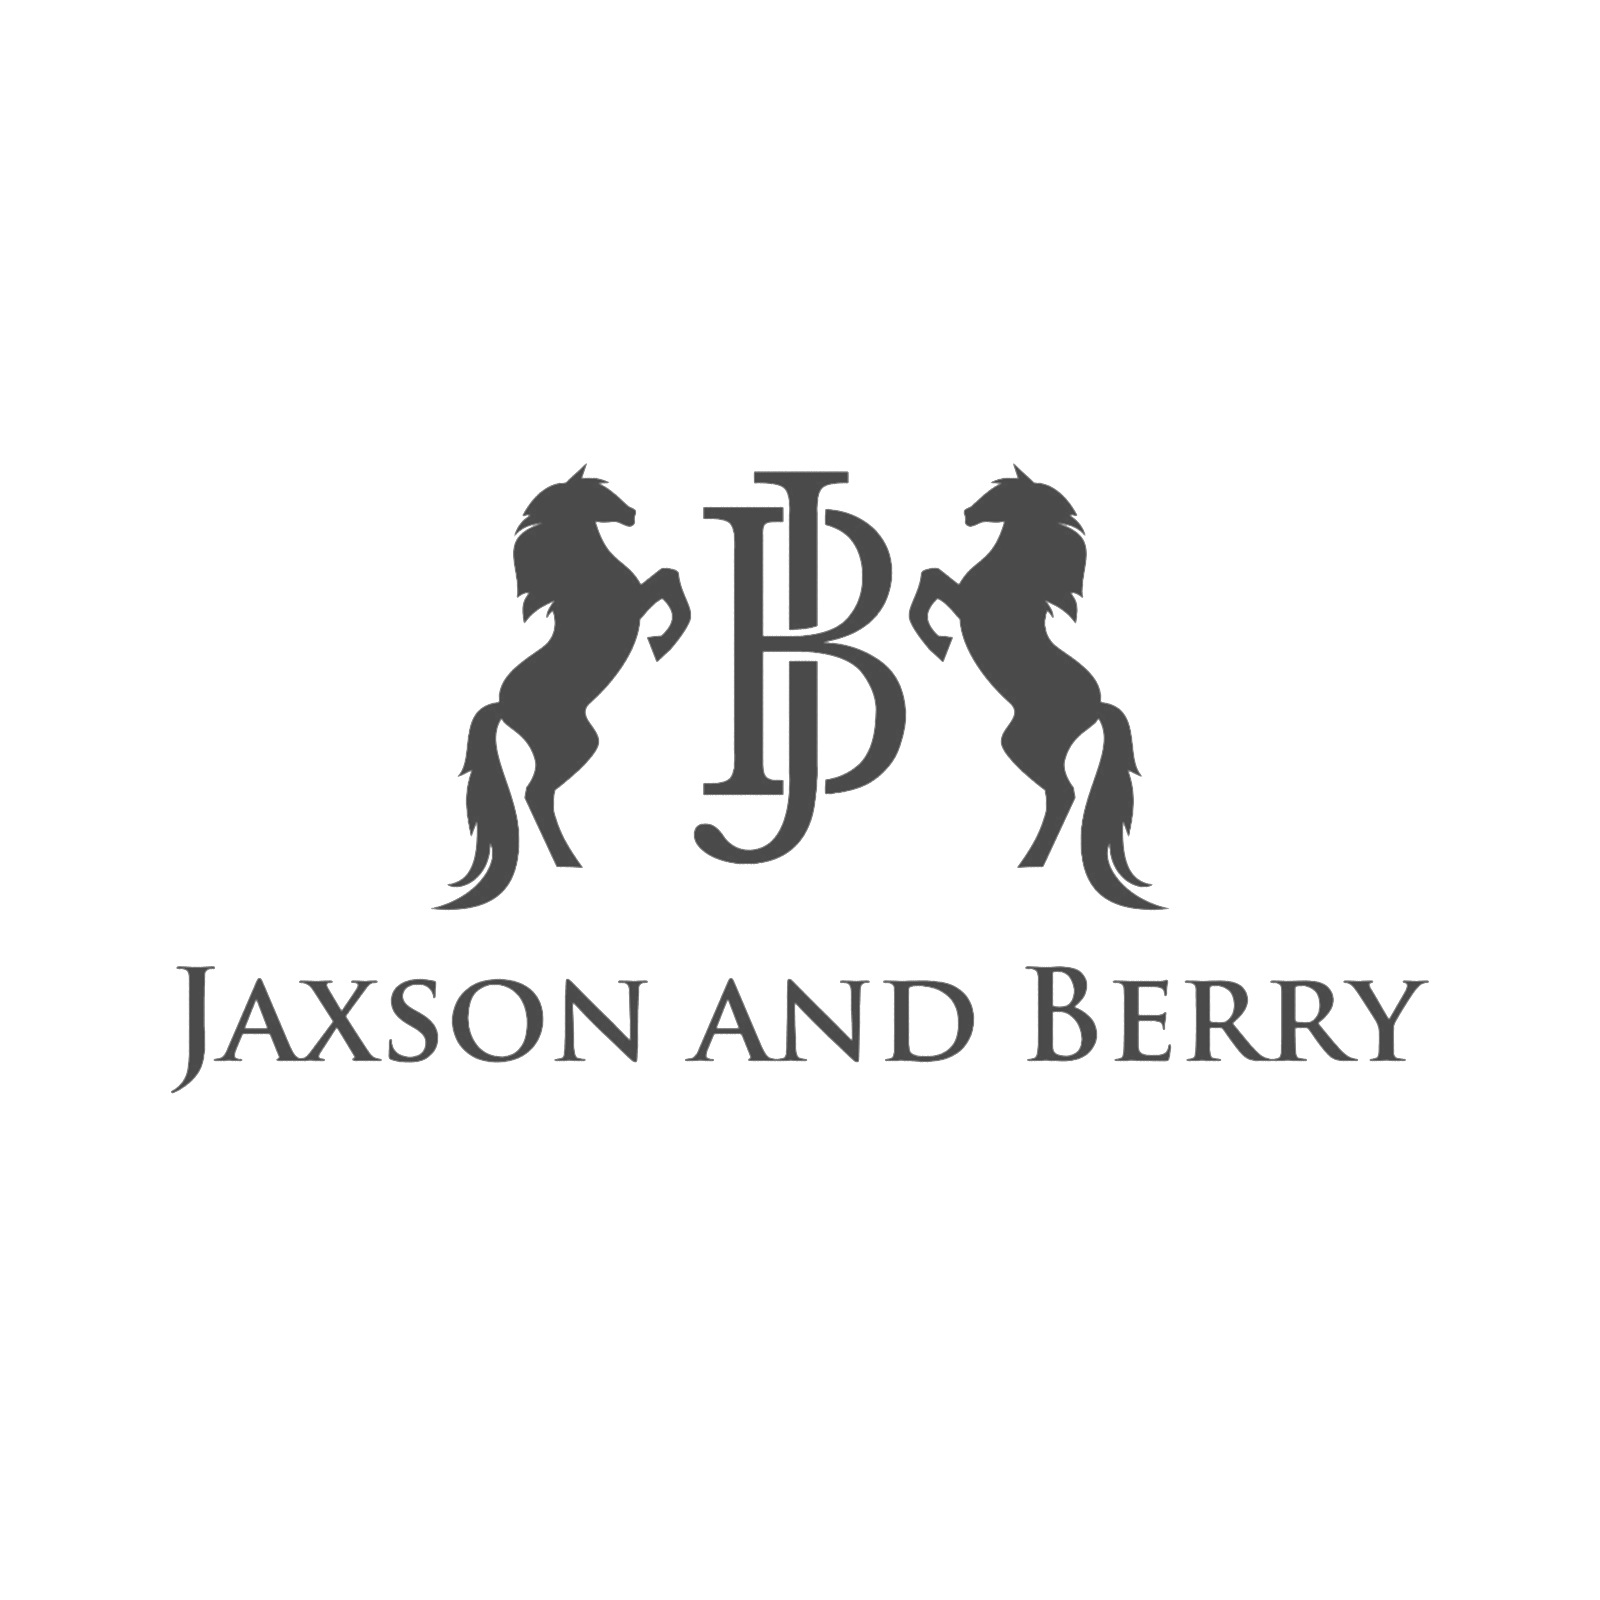 Jaxson and Berry